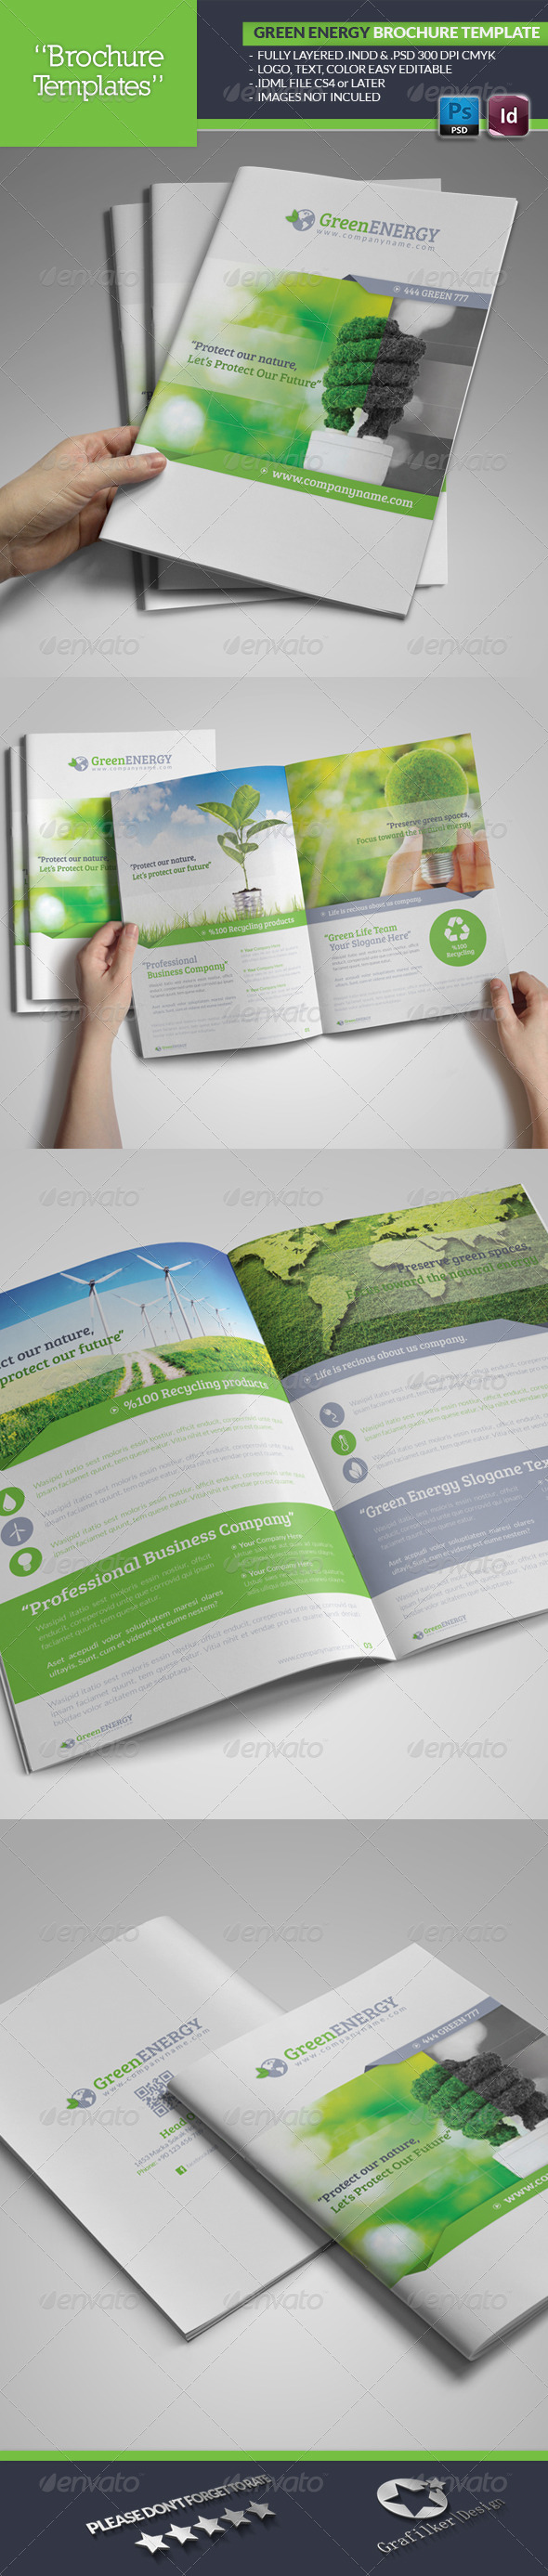 Green Energy Brochure Template - Brochures Print Templates